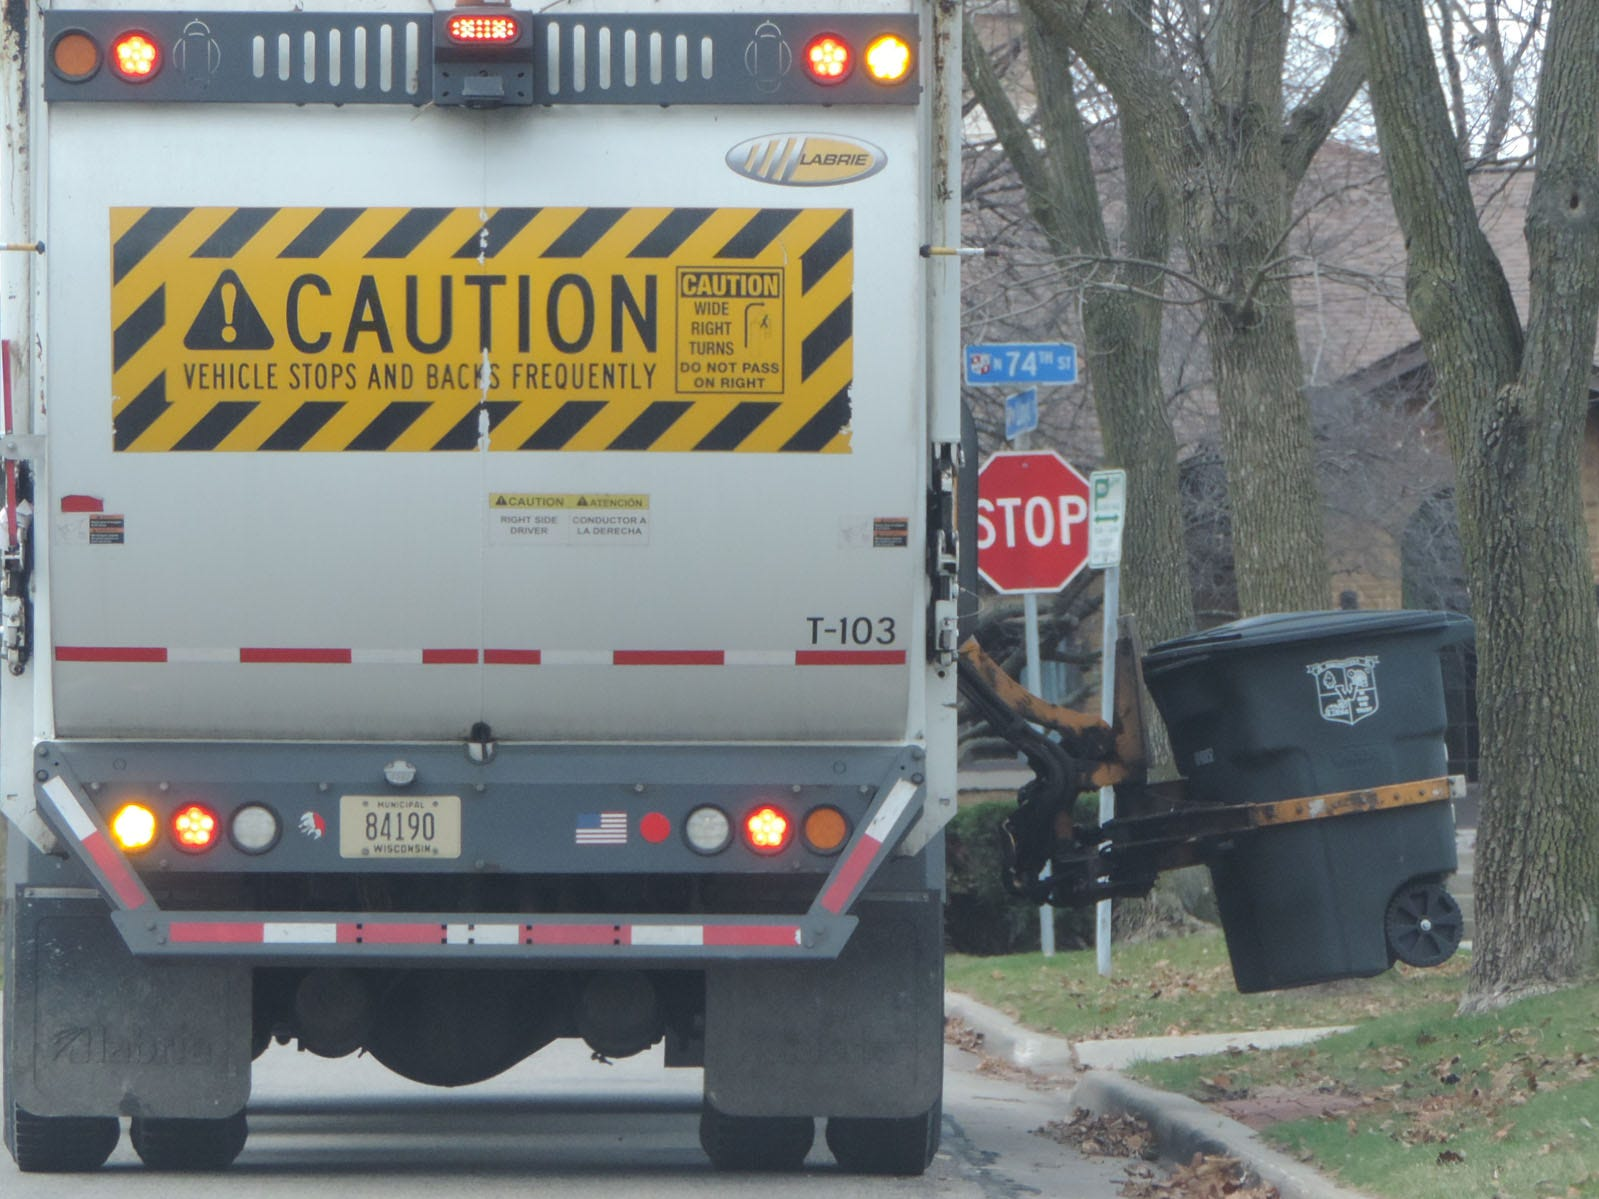 The city of Wauwatosa uses its own employees and vehicles to collect residential garbage and recycling.